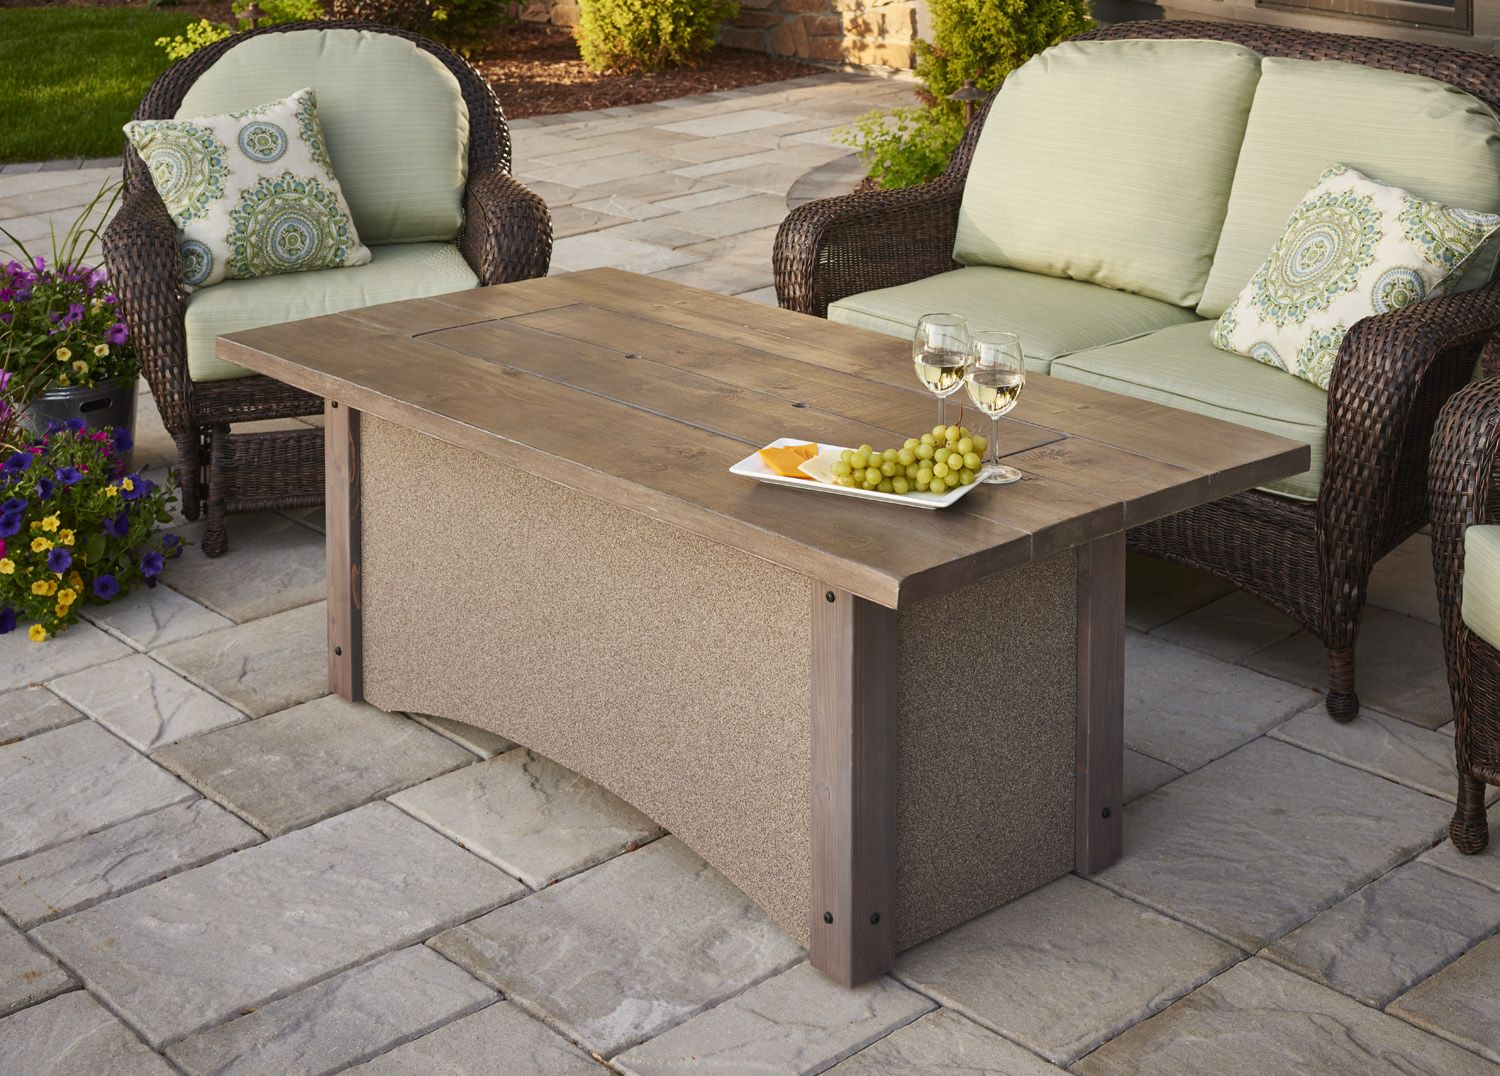 Outdoor Gas Fire Pit Tables And Gas Fireplaces Add A Warm, Cozy Glow To Any